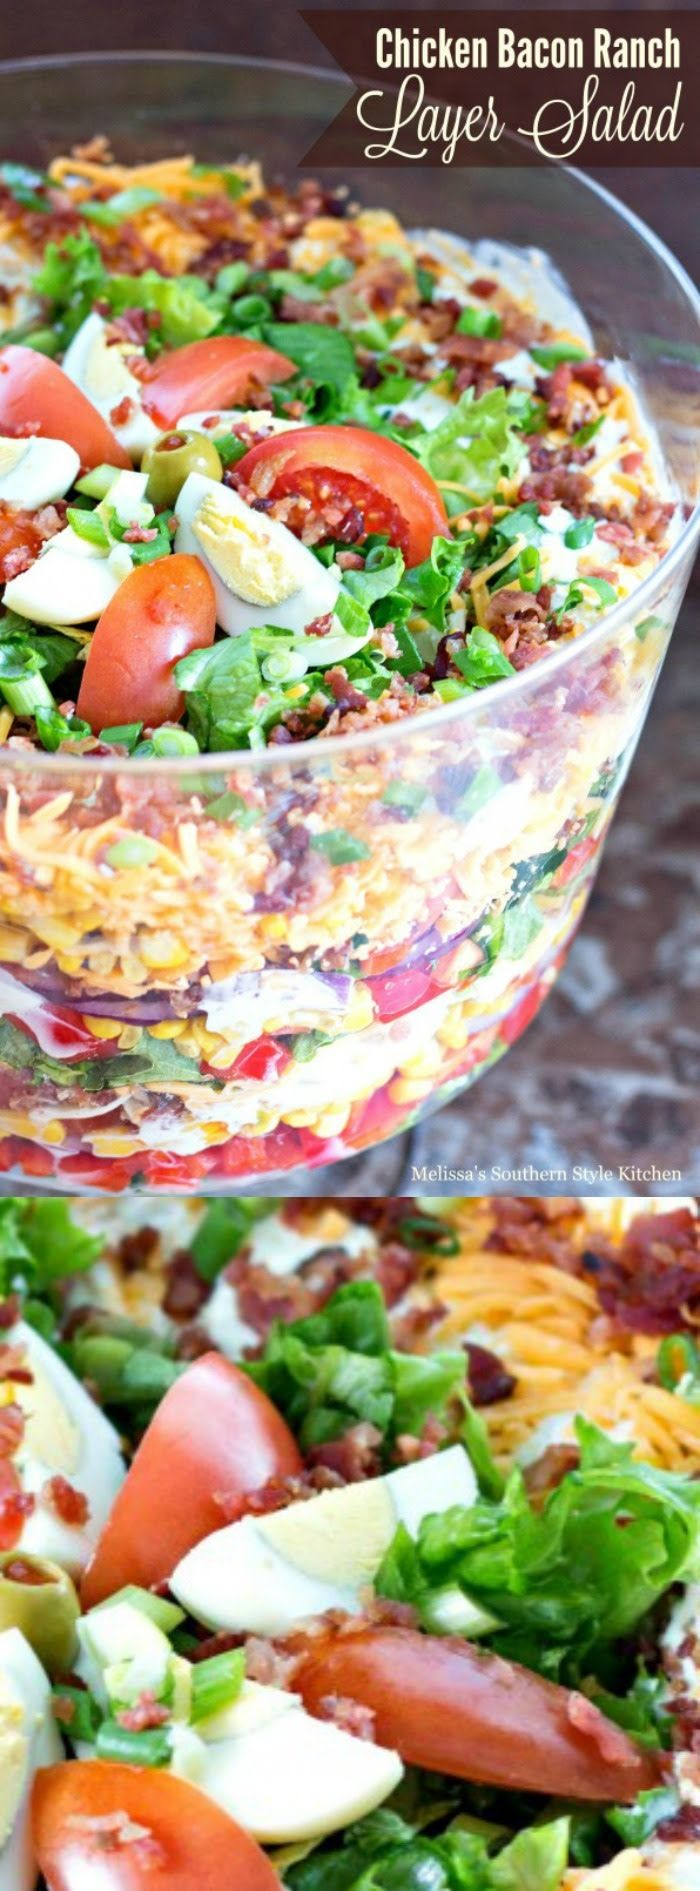 Chicken Bacon Ranch Layer Salad | Melissa's Southern Style Kitchen